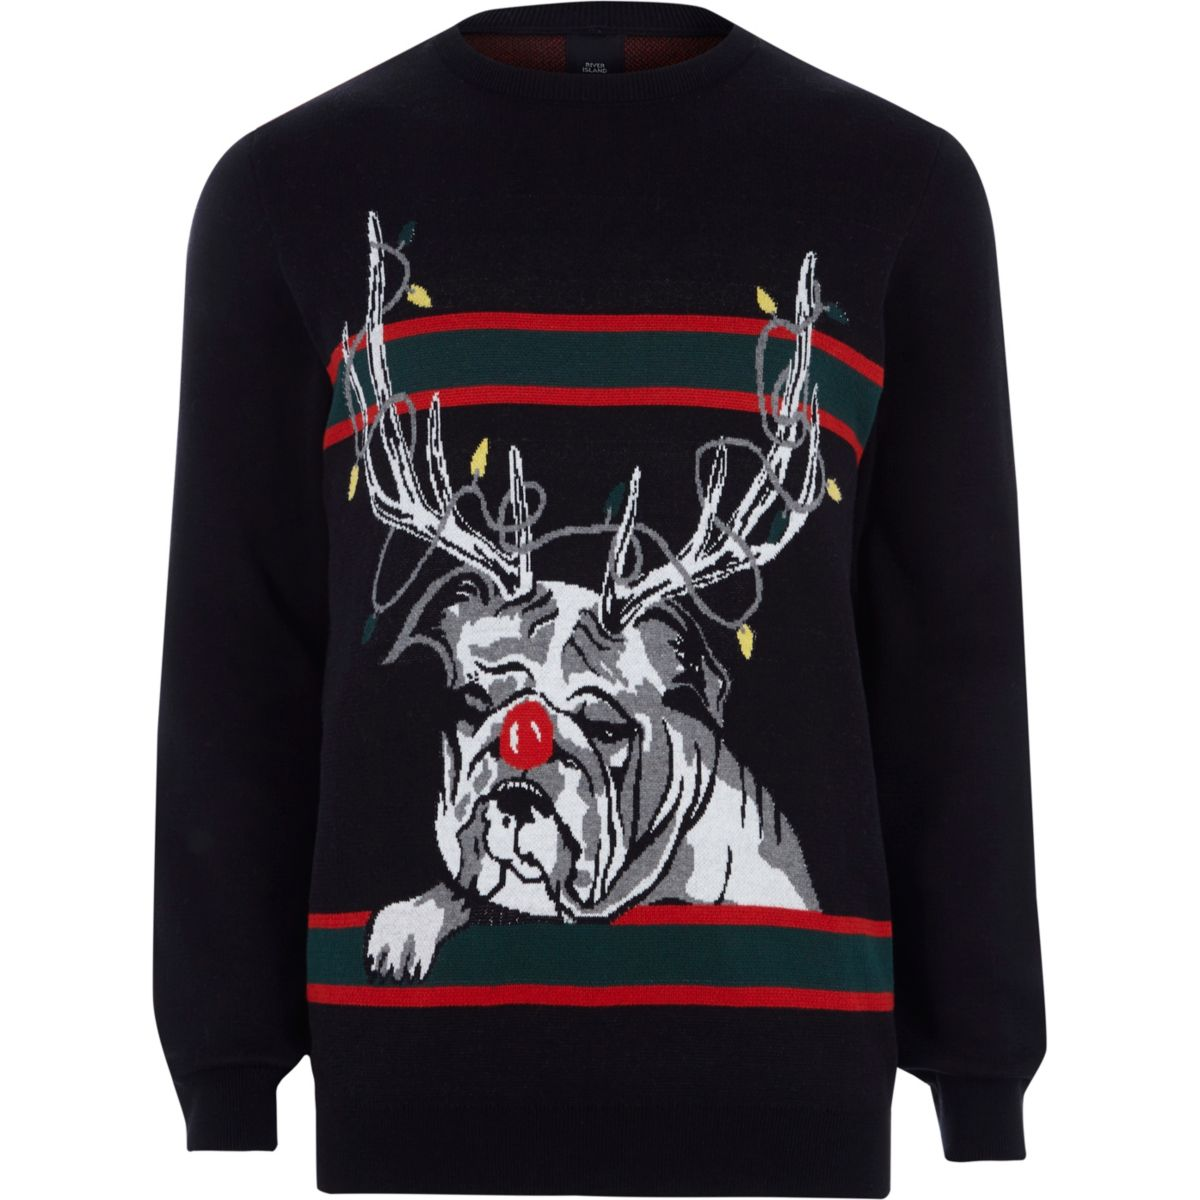 Black reindeer bulldog knit Christmas sweater